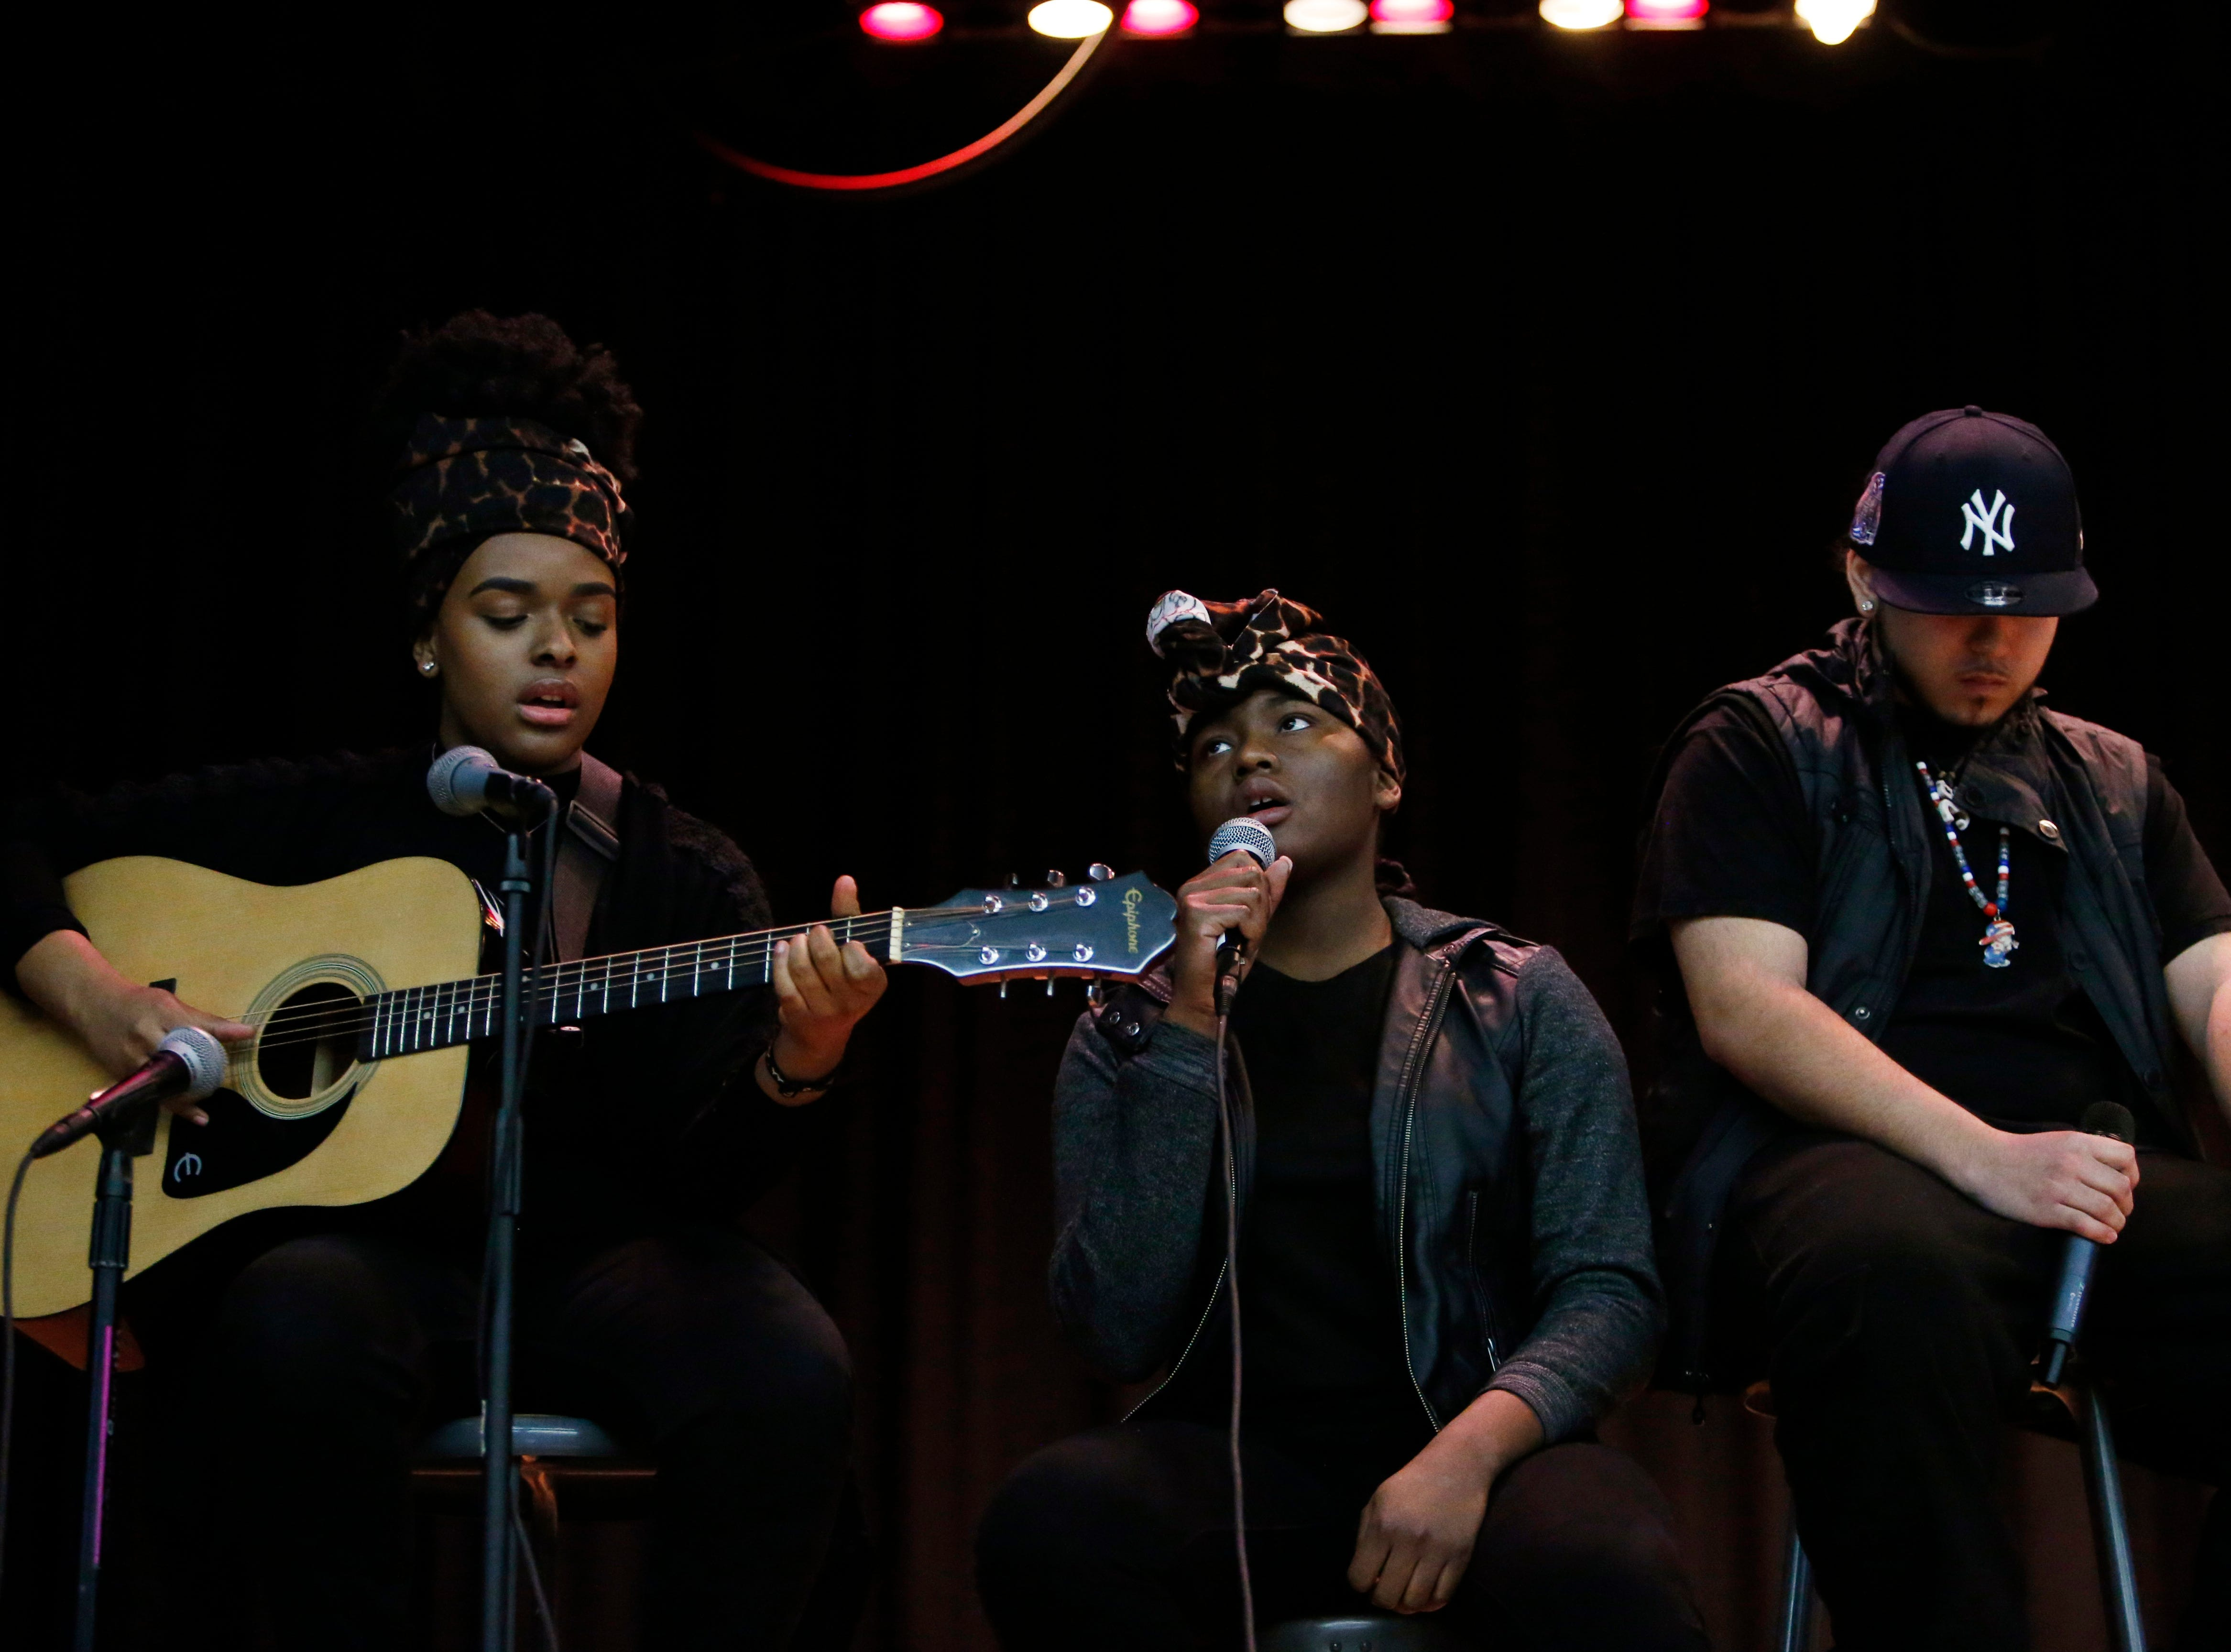 Poughkeepsie High School students, from left,  Angel Hernandez, Taznir Smalls and Miguel Sanchez perform during Thursday's Martin Luther King Celebration at Poughkeepsie High School on February 14, 2019.